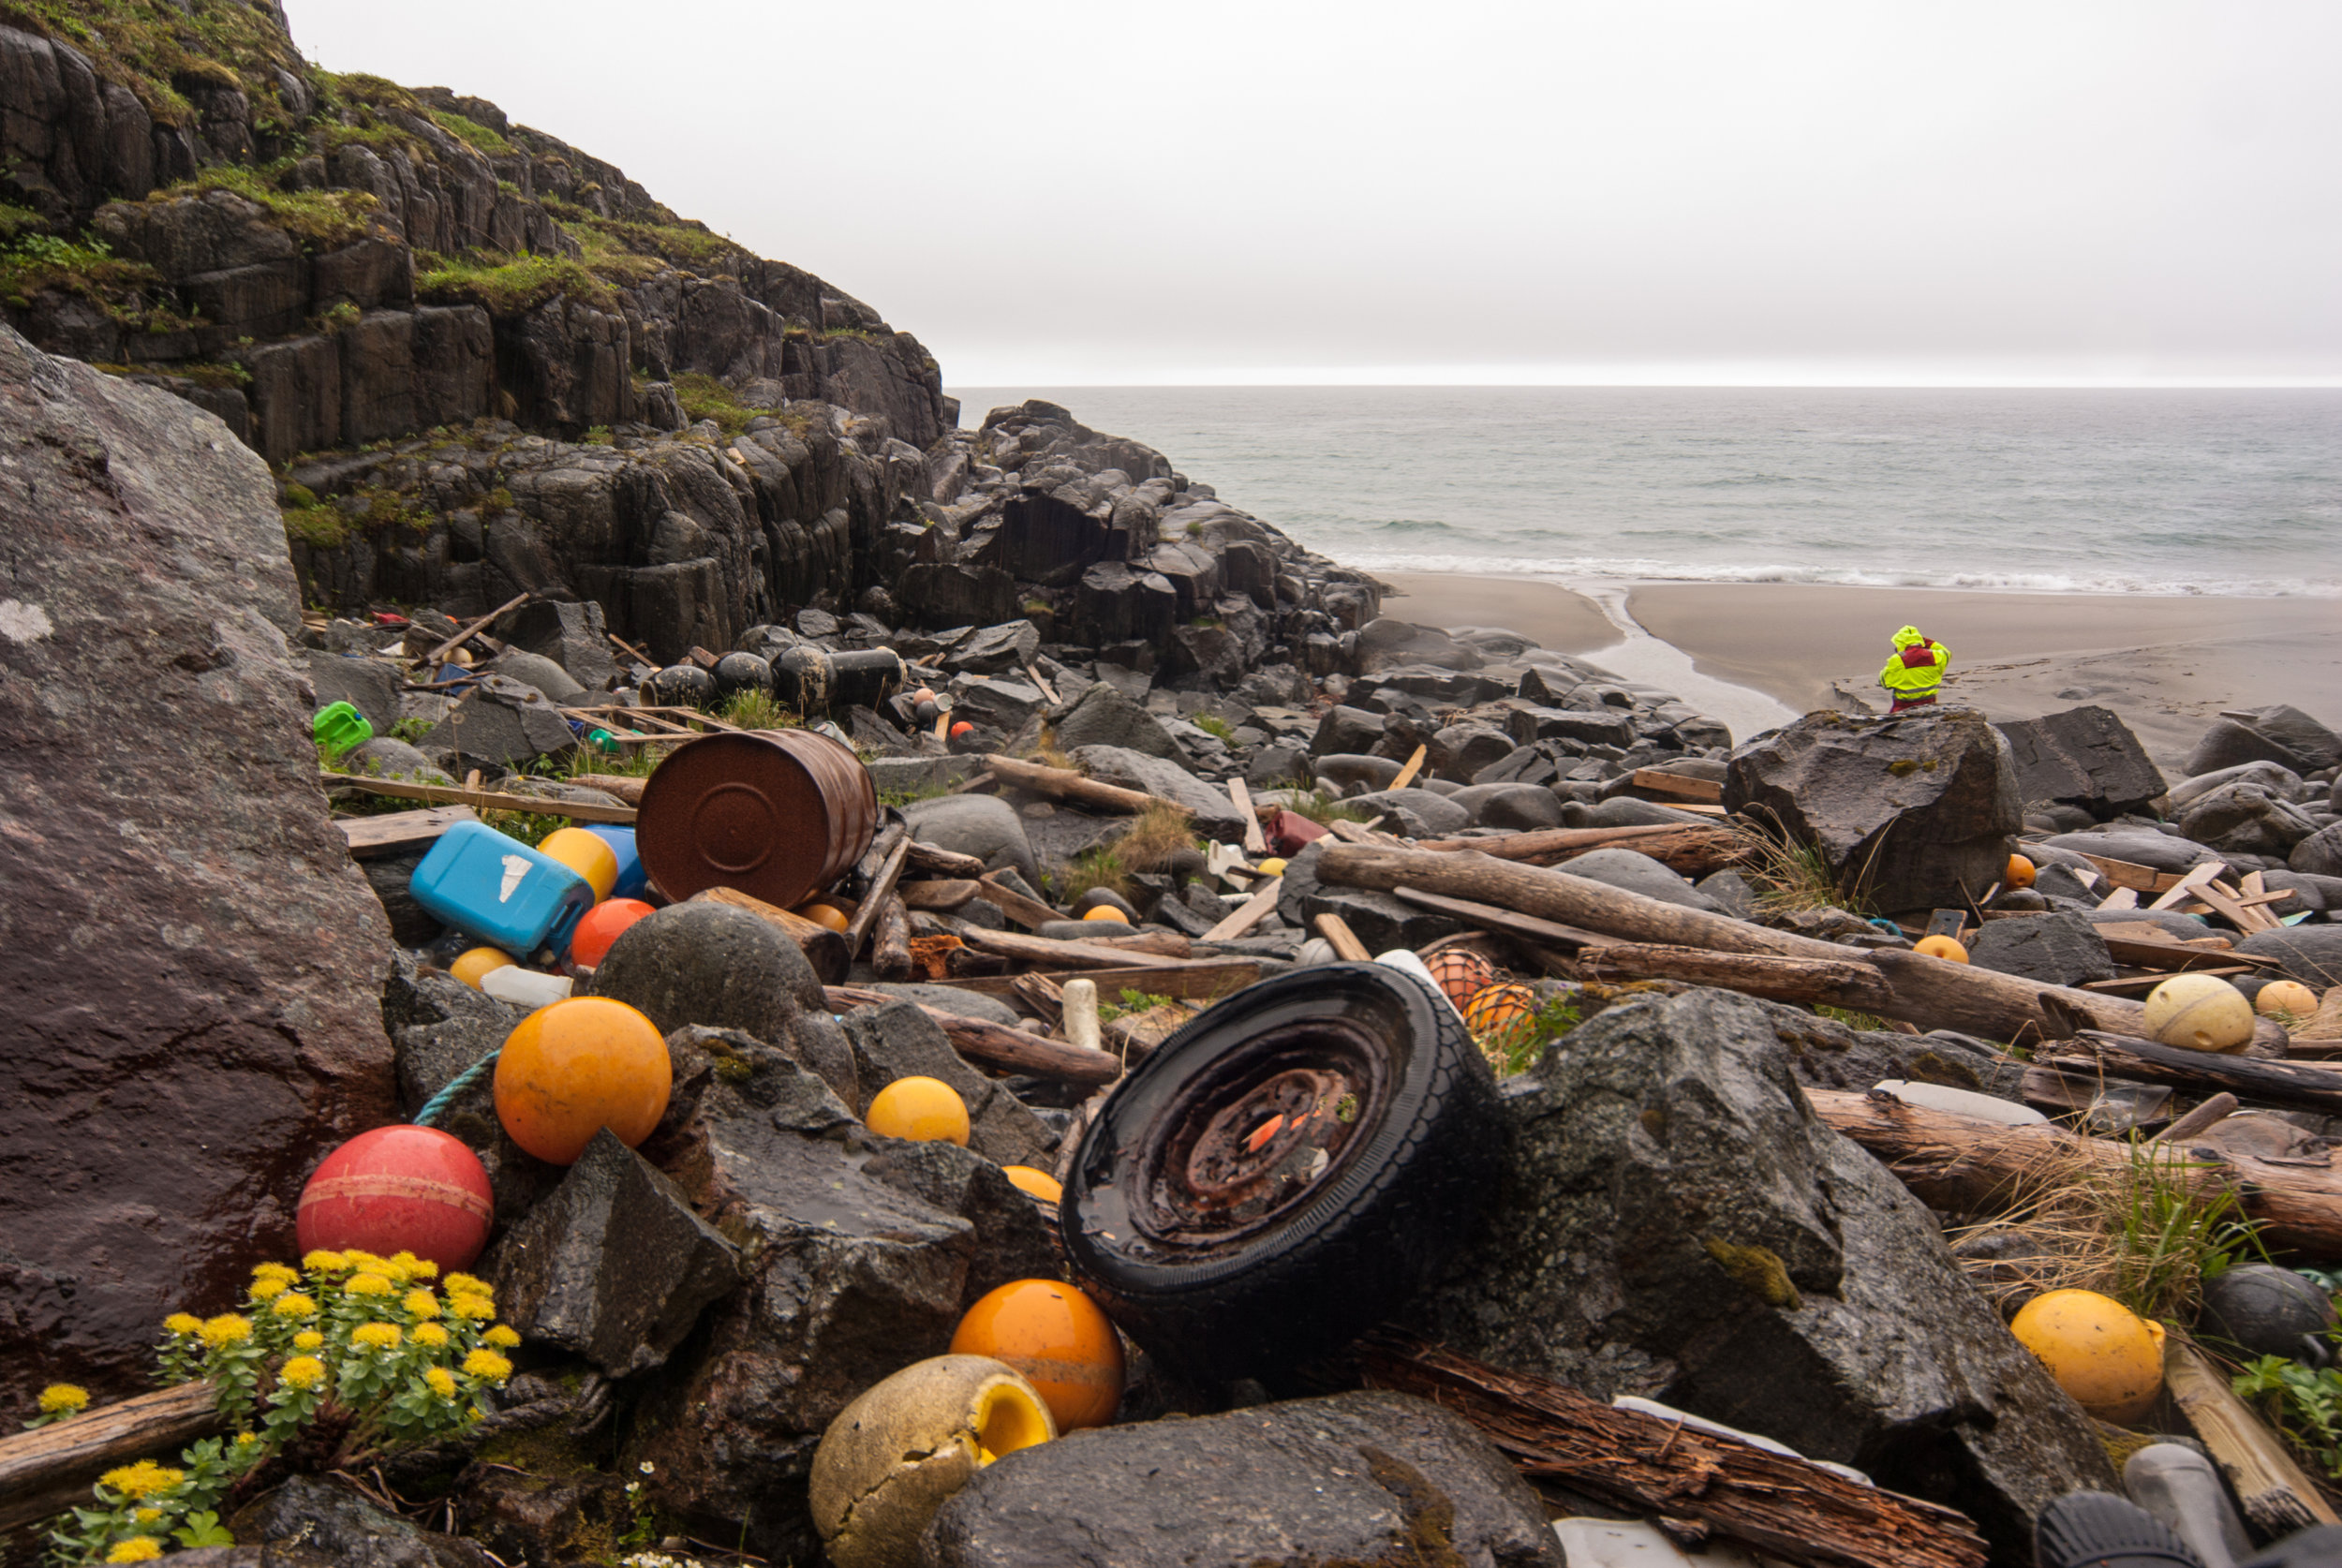 Garbage litters beaches all around the planet, sometimes having travelled thousands of kilometres across the ocean.   Bo Eide/Flickr  (CC BY-NC-ND 2.0)